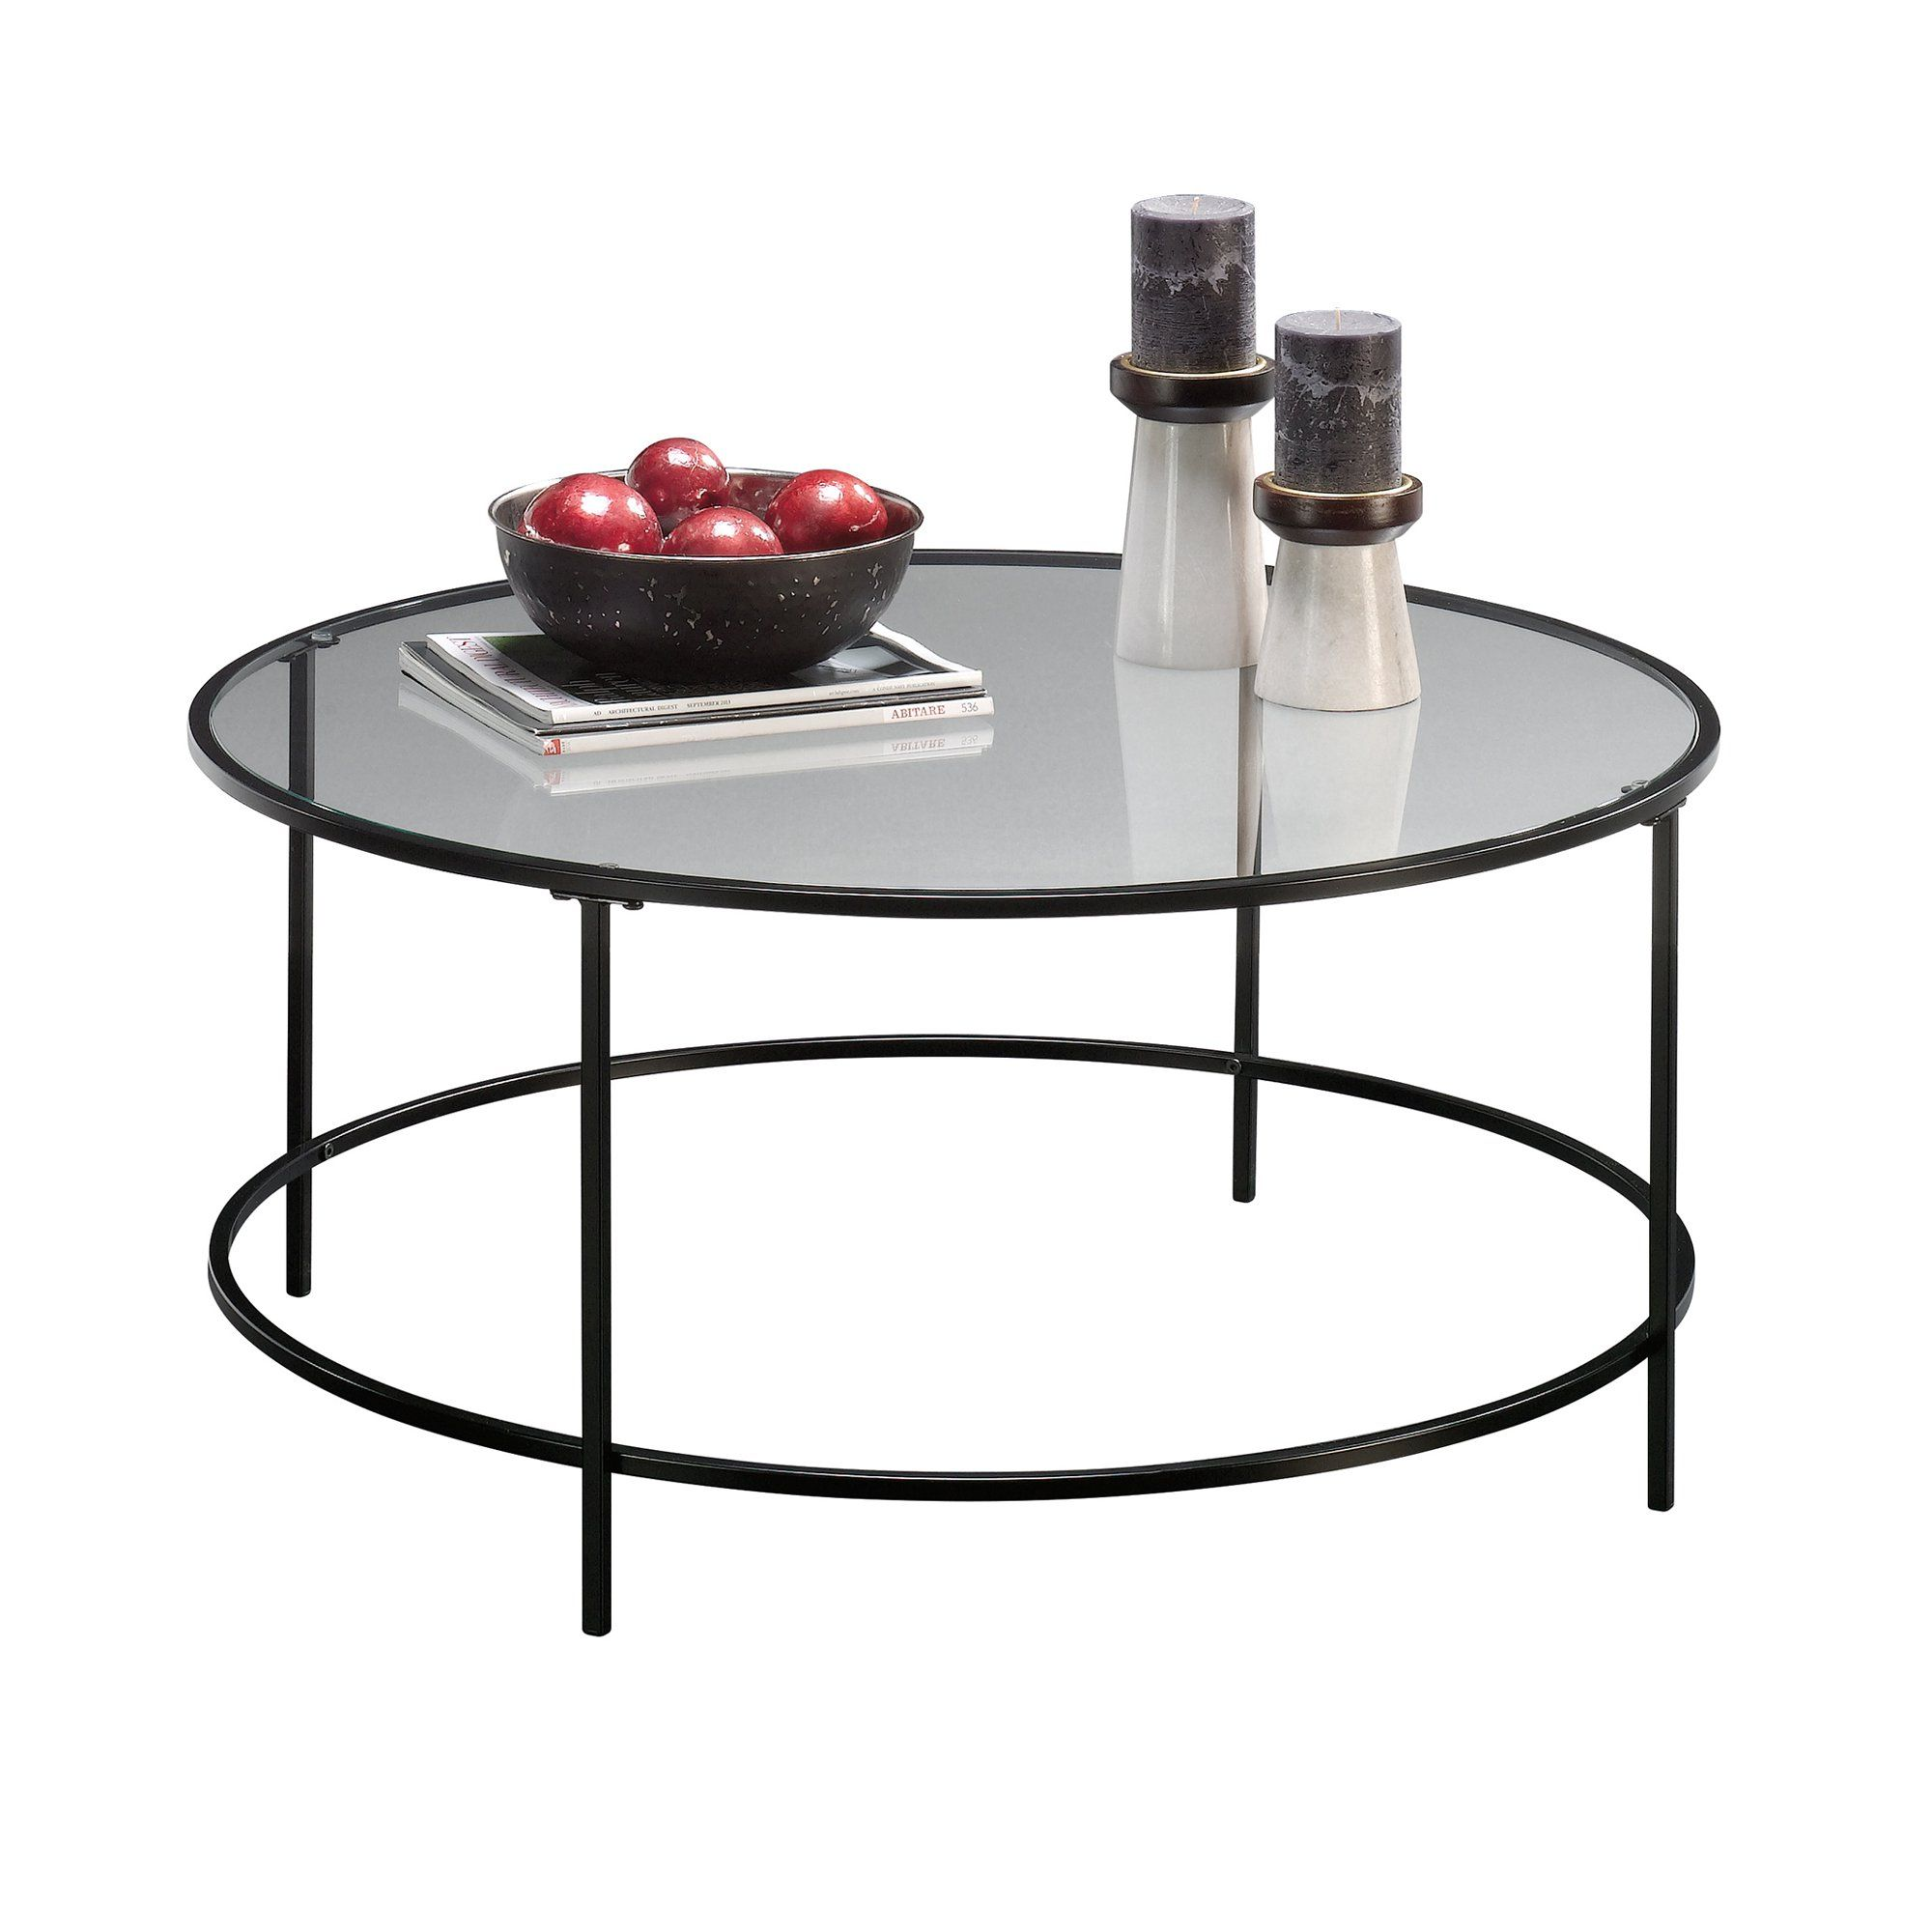 Better Homes Gardens Nola Coffee Table Black Finish Walmart Com In 2021 Round Glass Coffee Table Coffee Table Modern Glass Coffee Table [ 2000 x 2000 Pixel ]